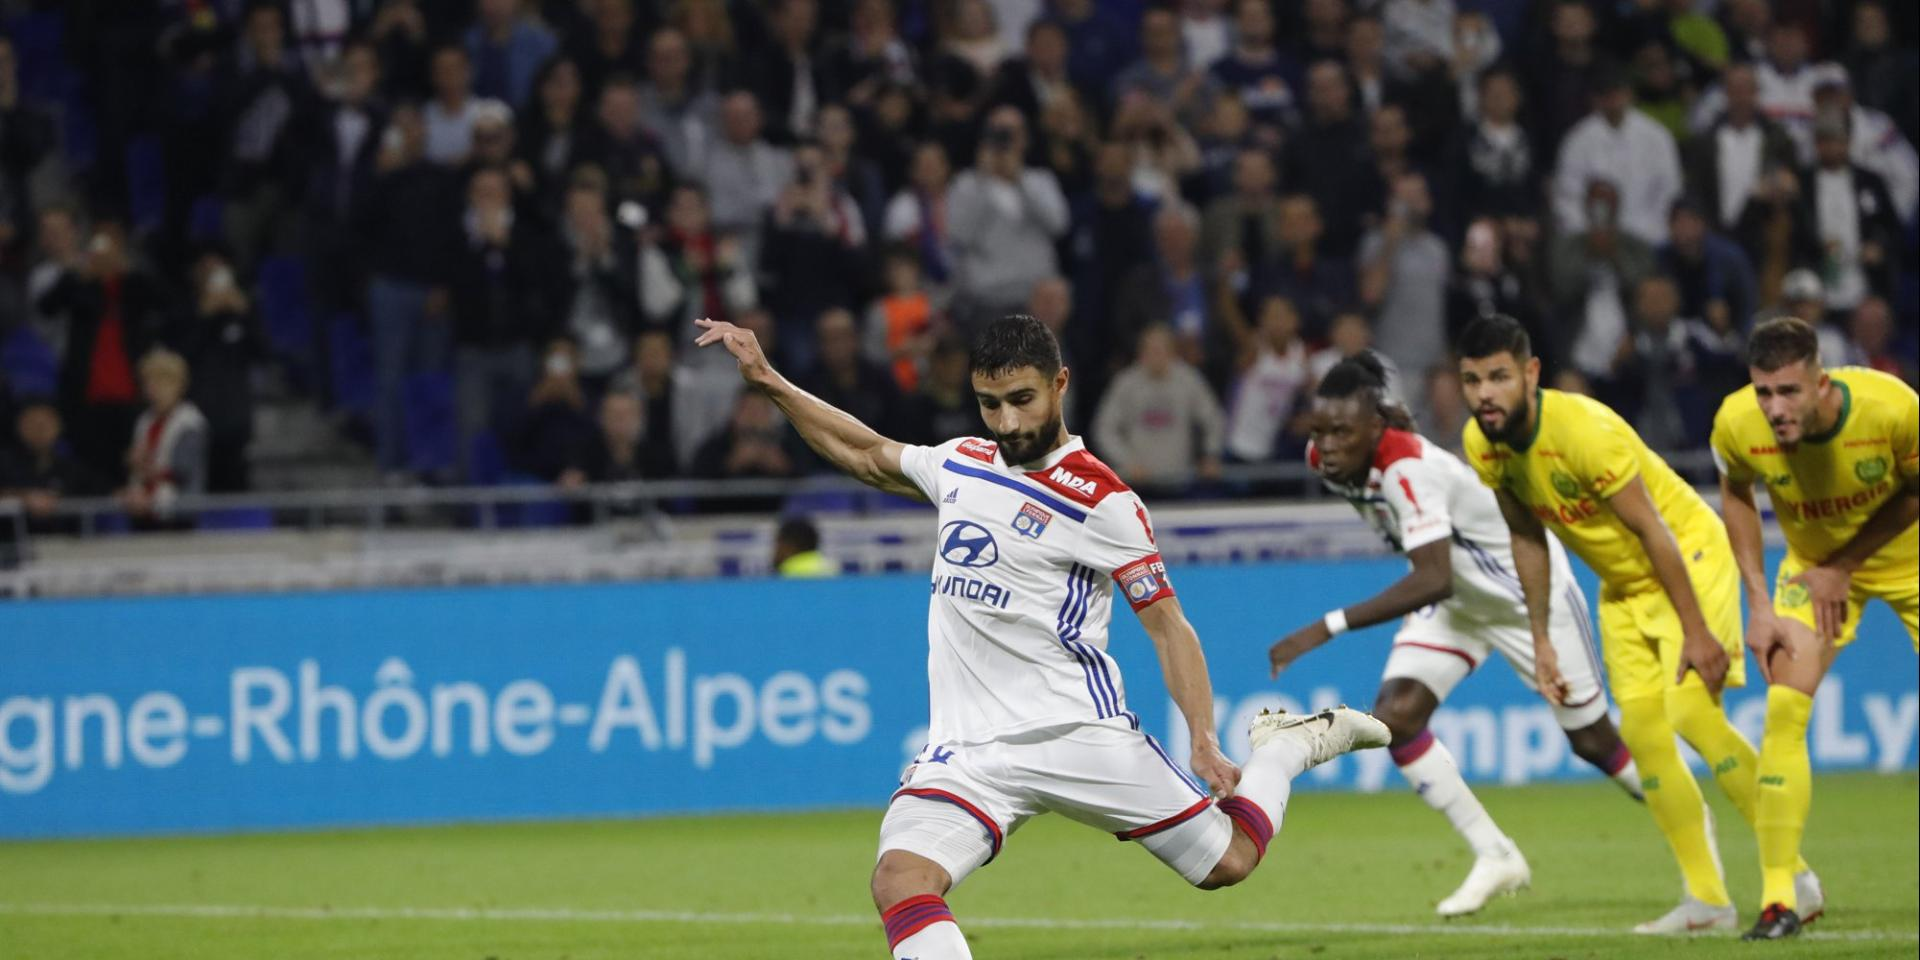 Lyon Nantes Les Notes De Lyon Nantes Foot Ligue 1